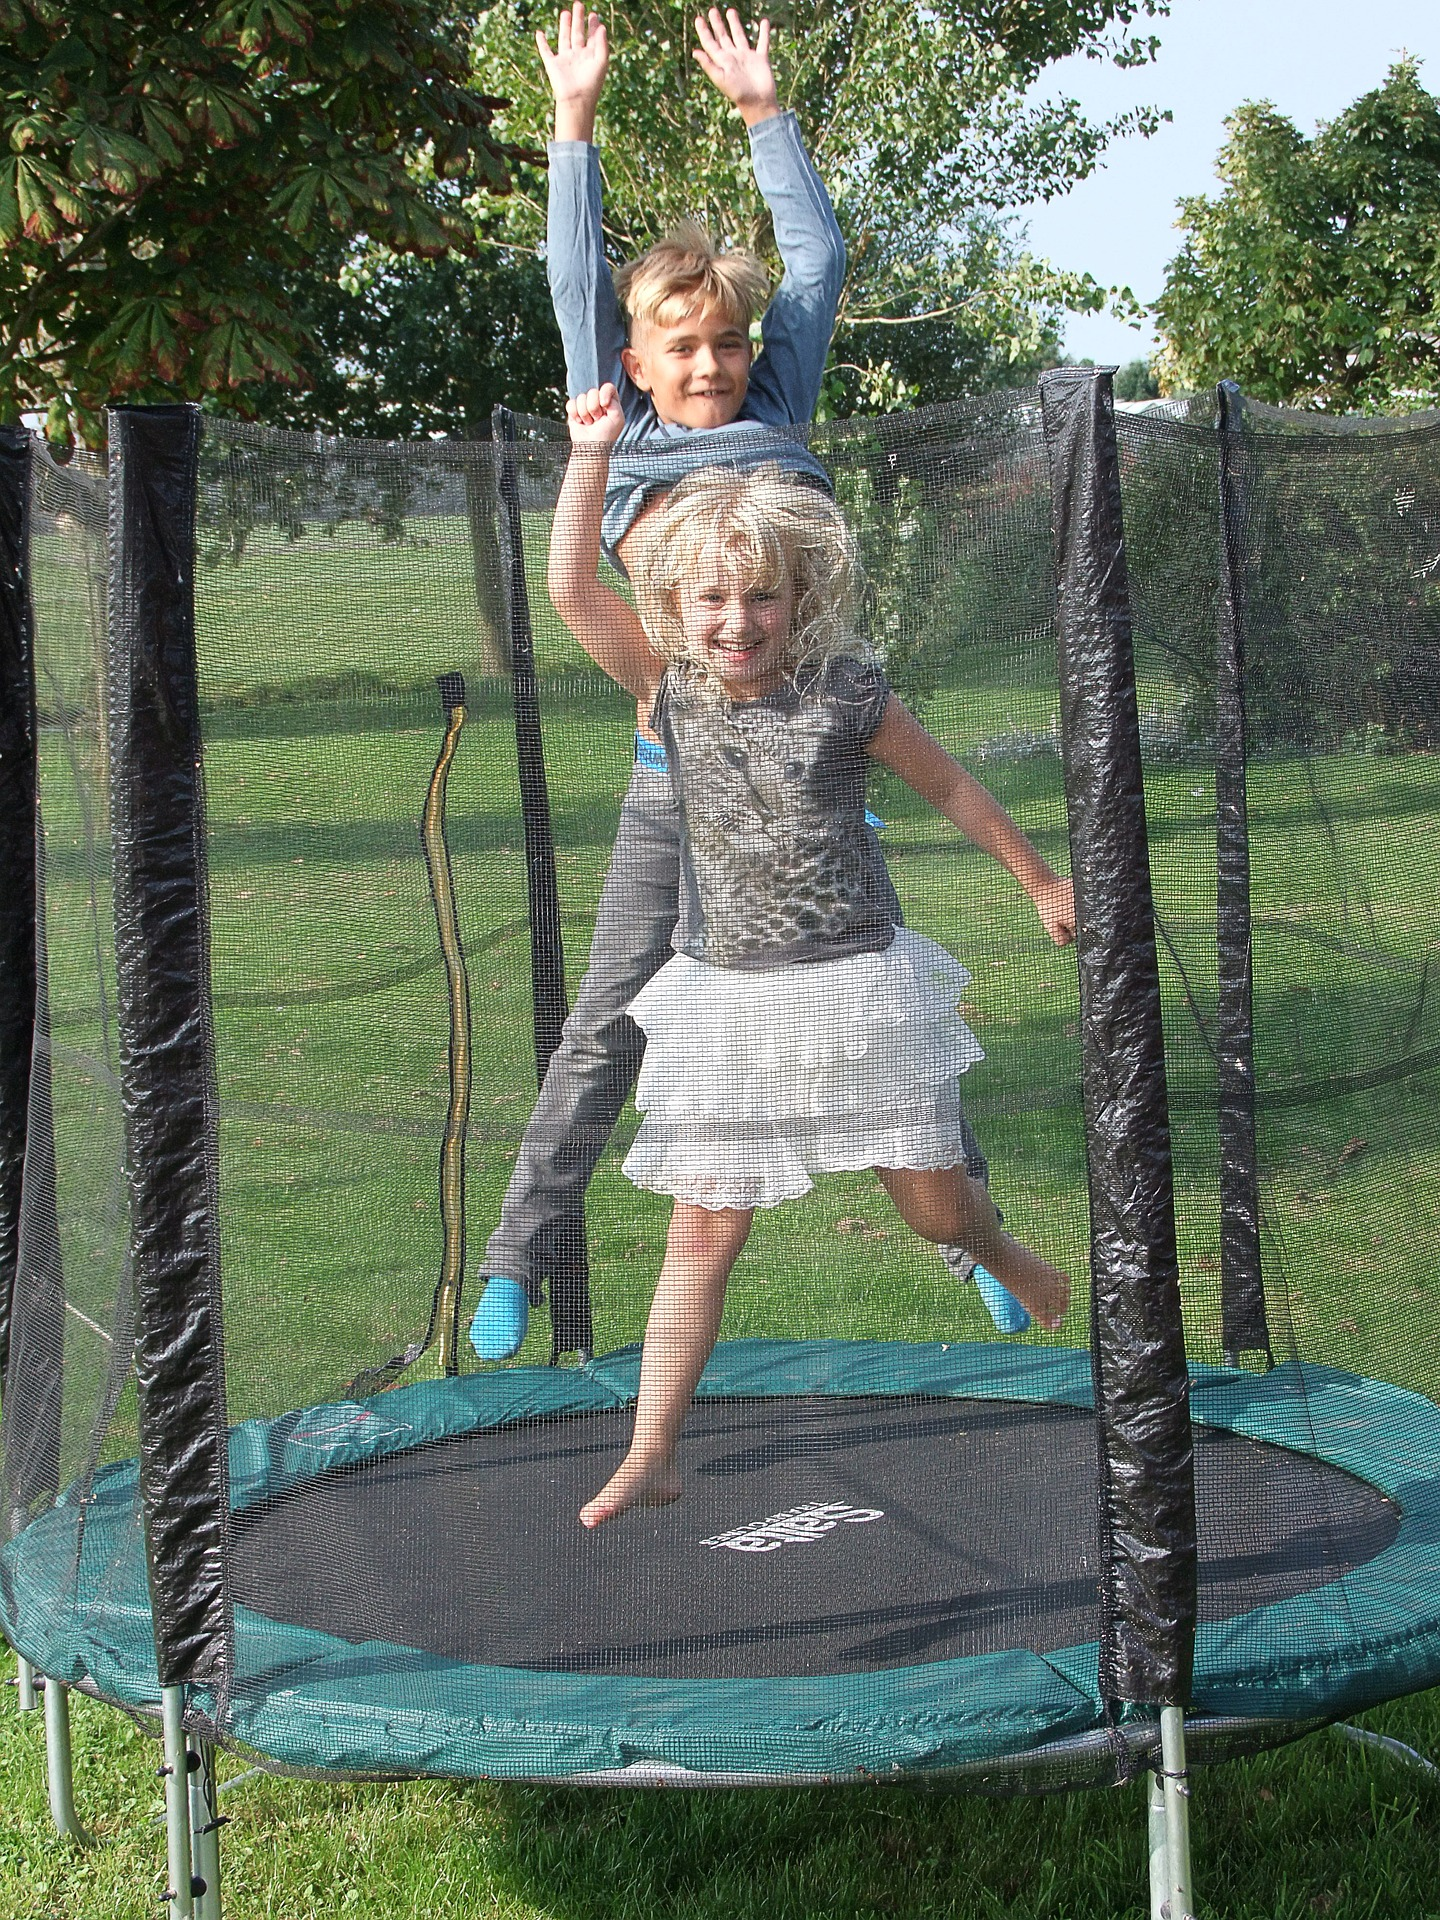 What is the relationship between trampoline and sport